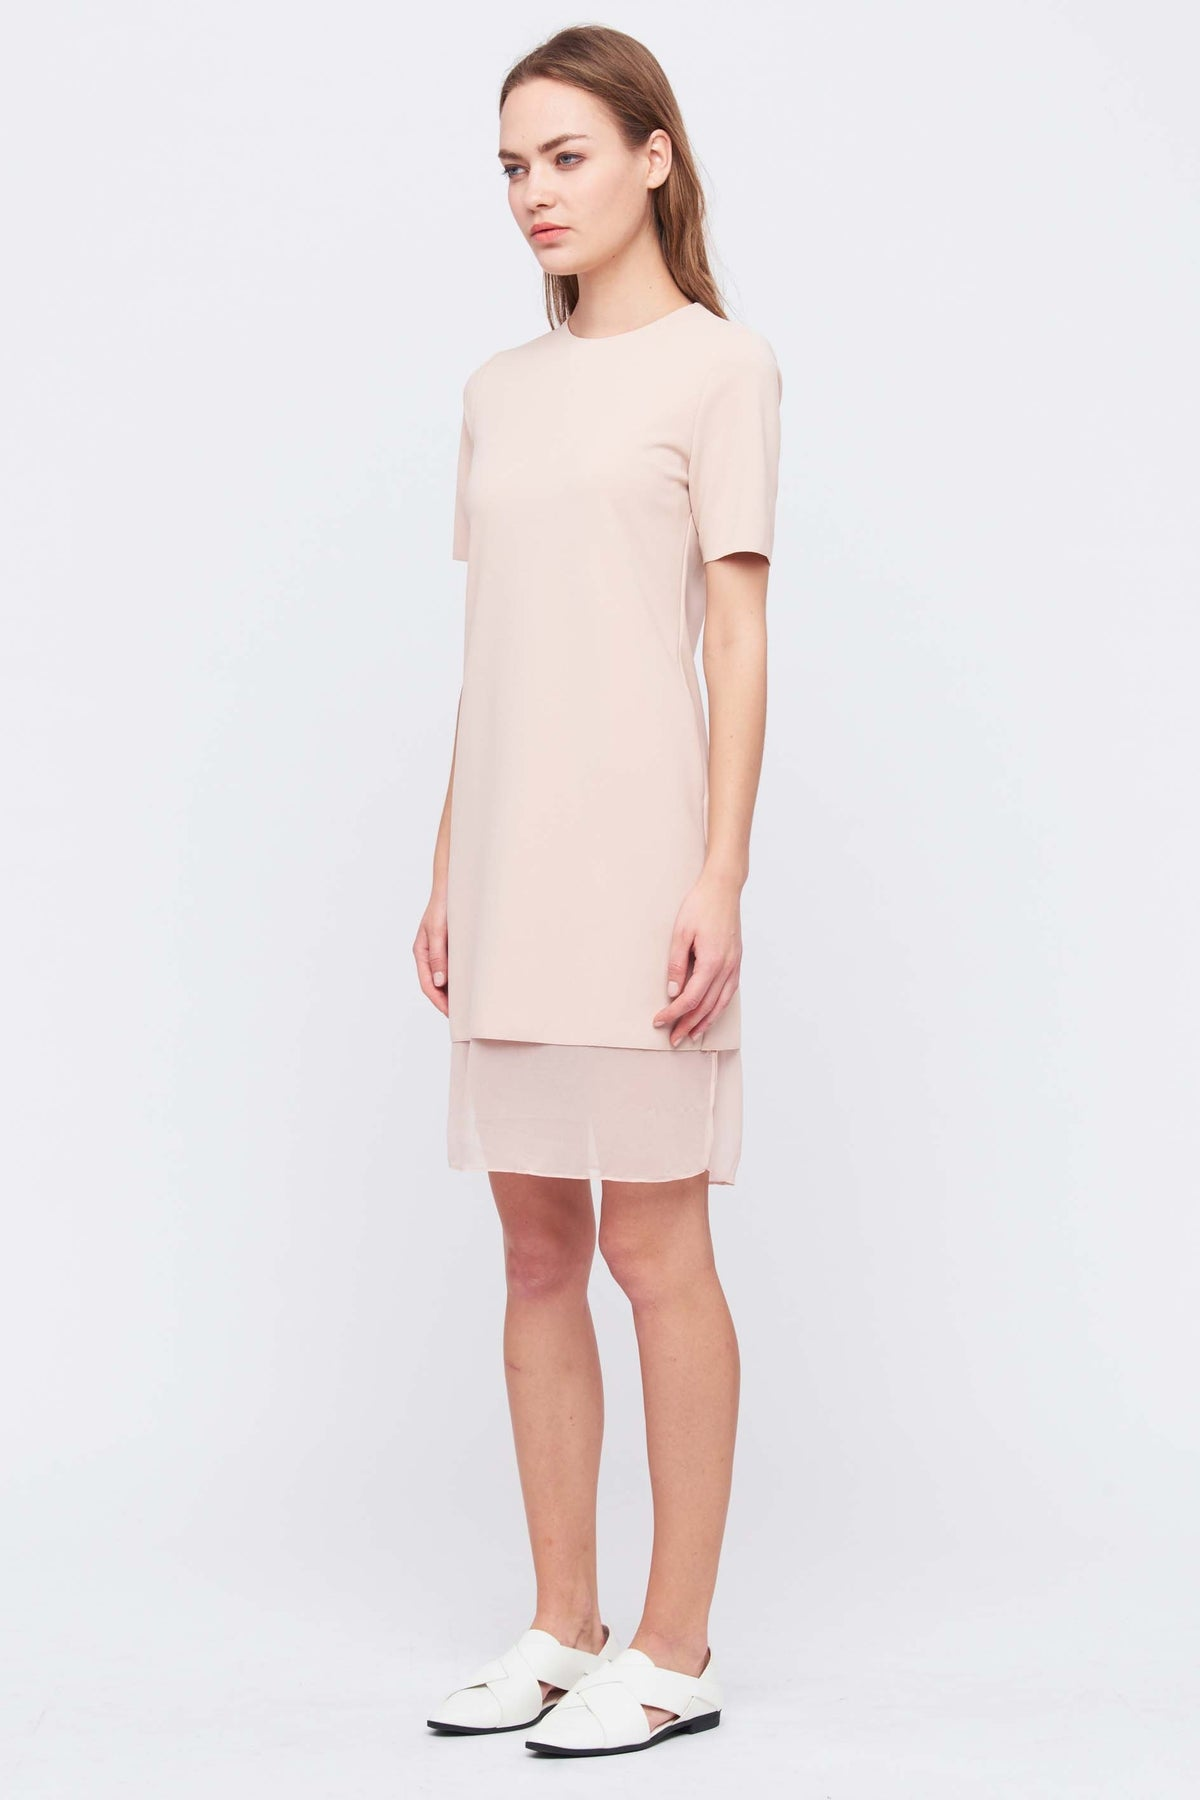 Layered Shift Dress In Nude Pink